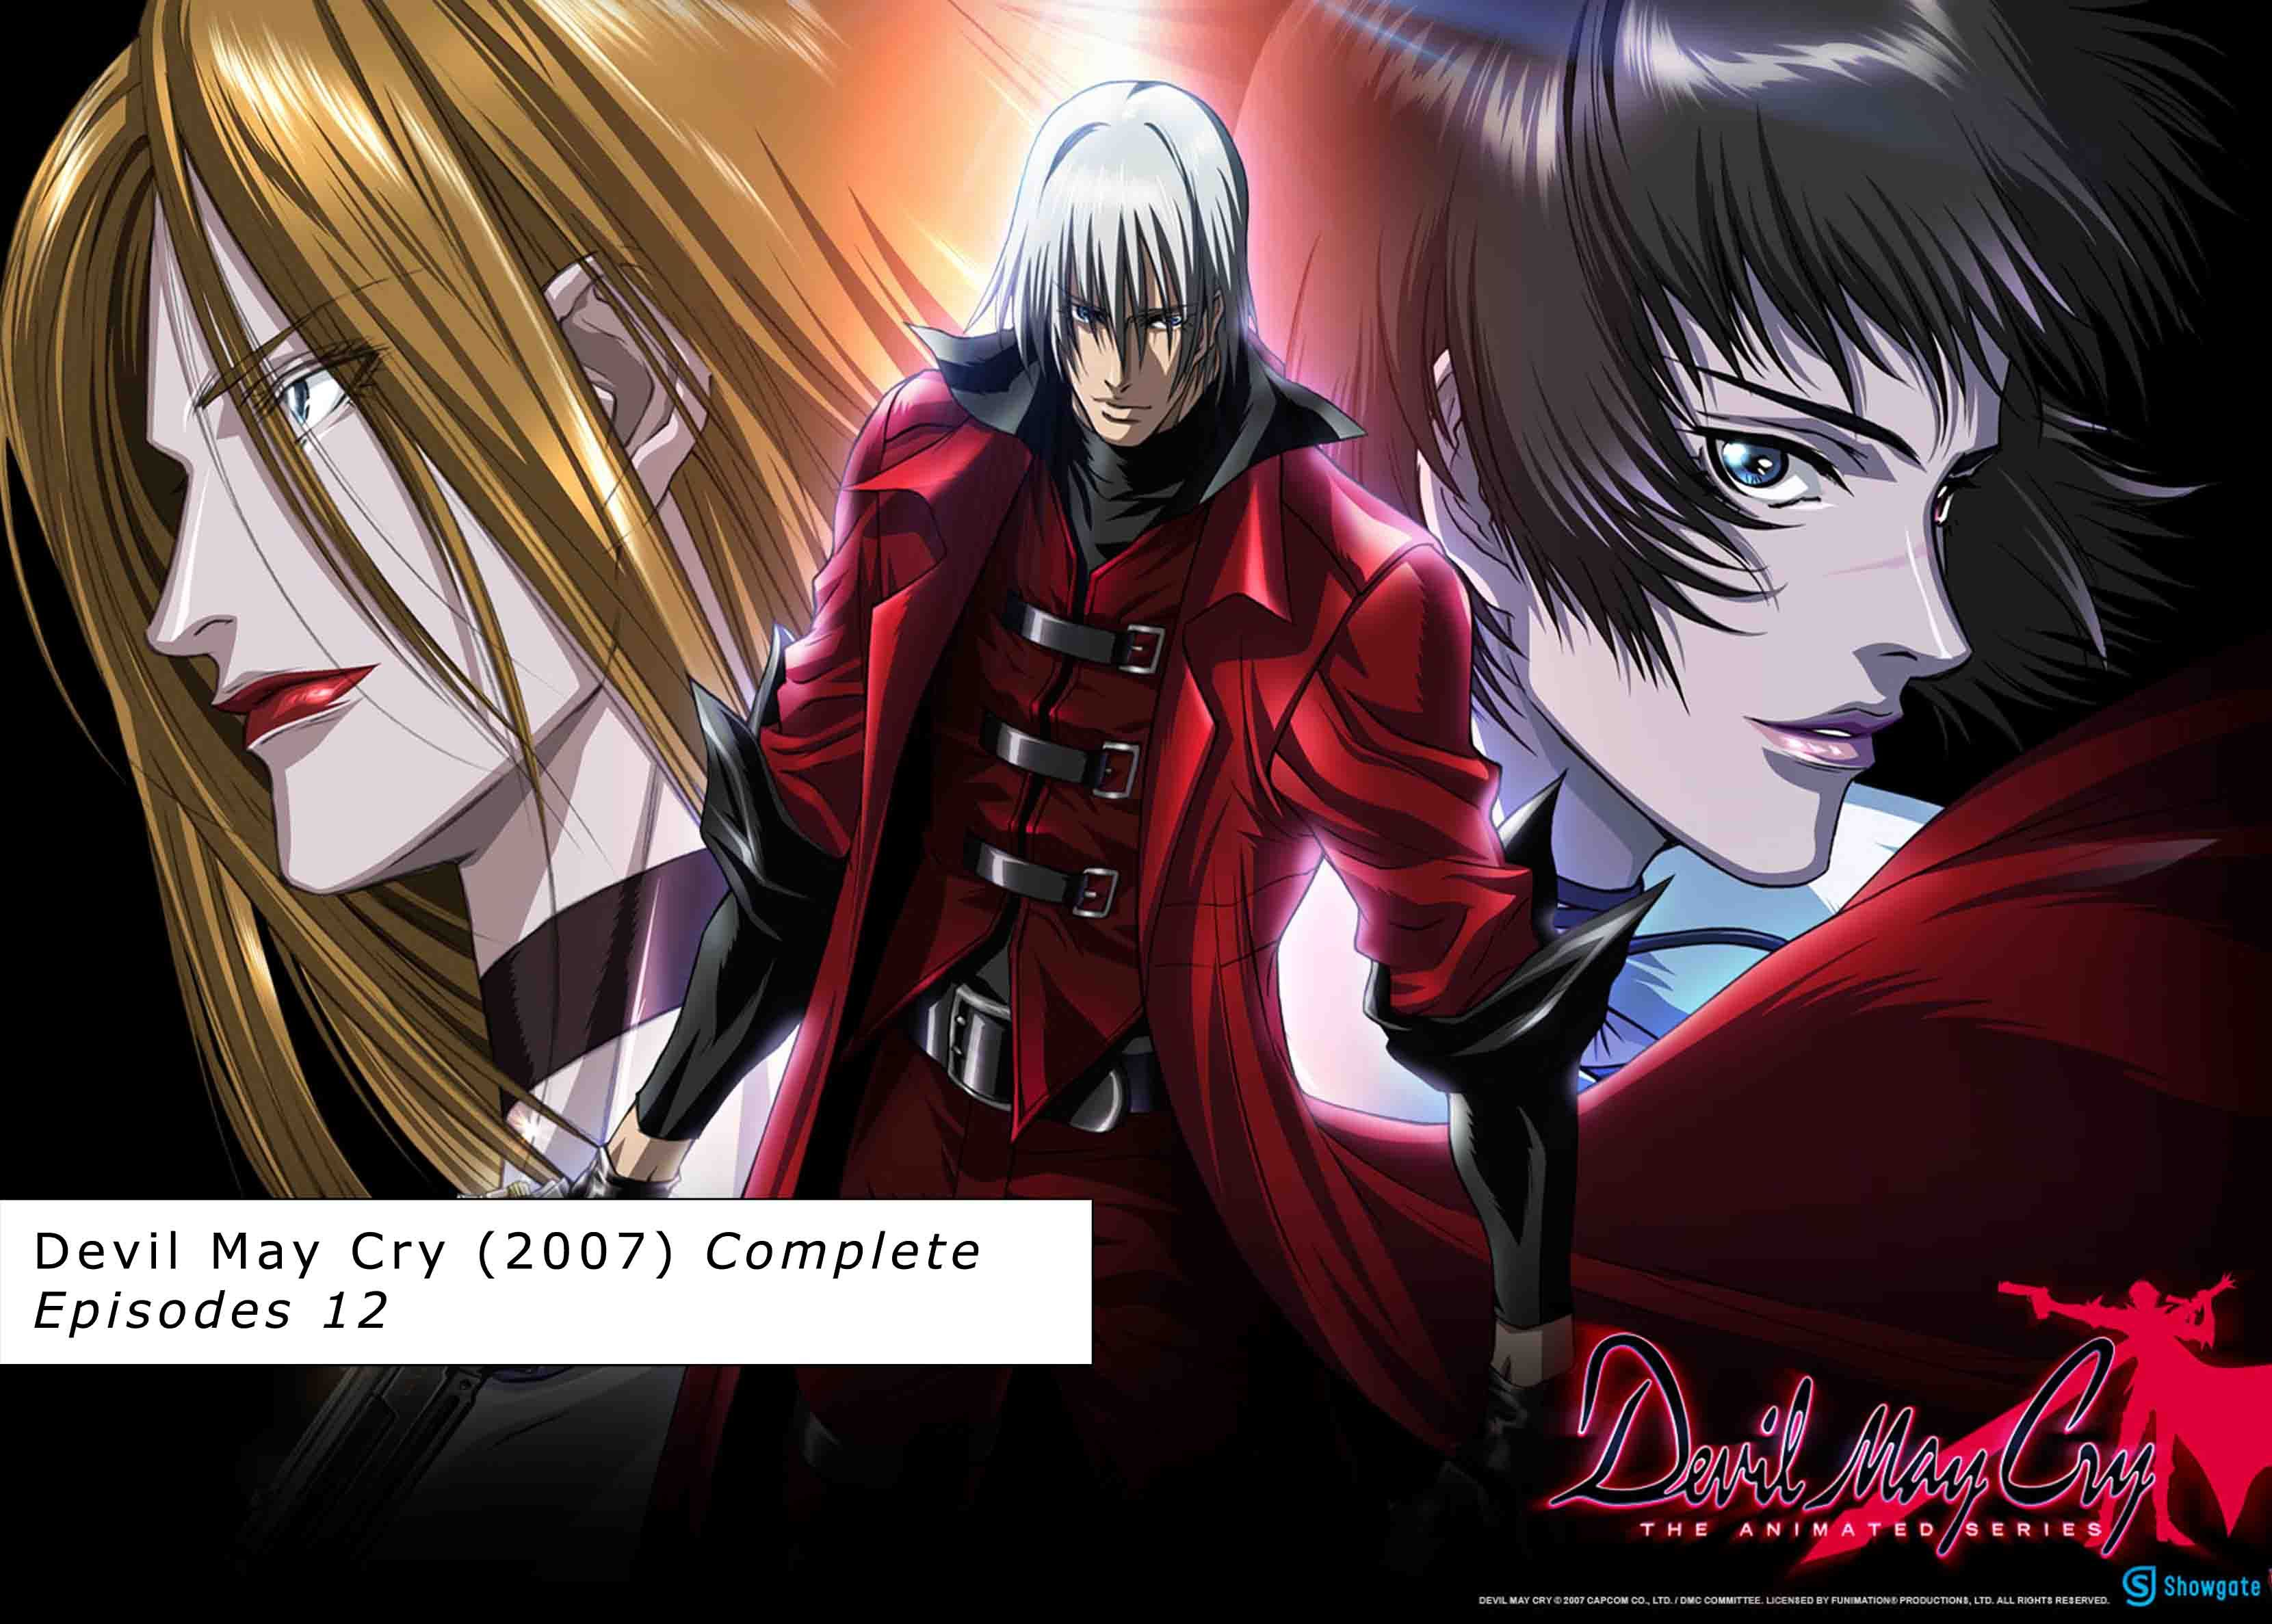 Devil May Cry Anime Series Collection Pinterest